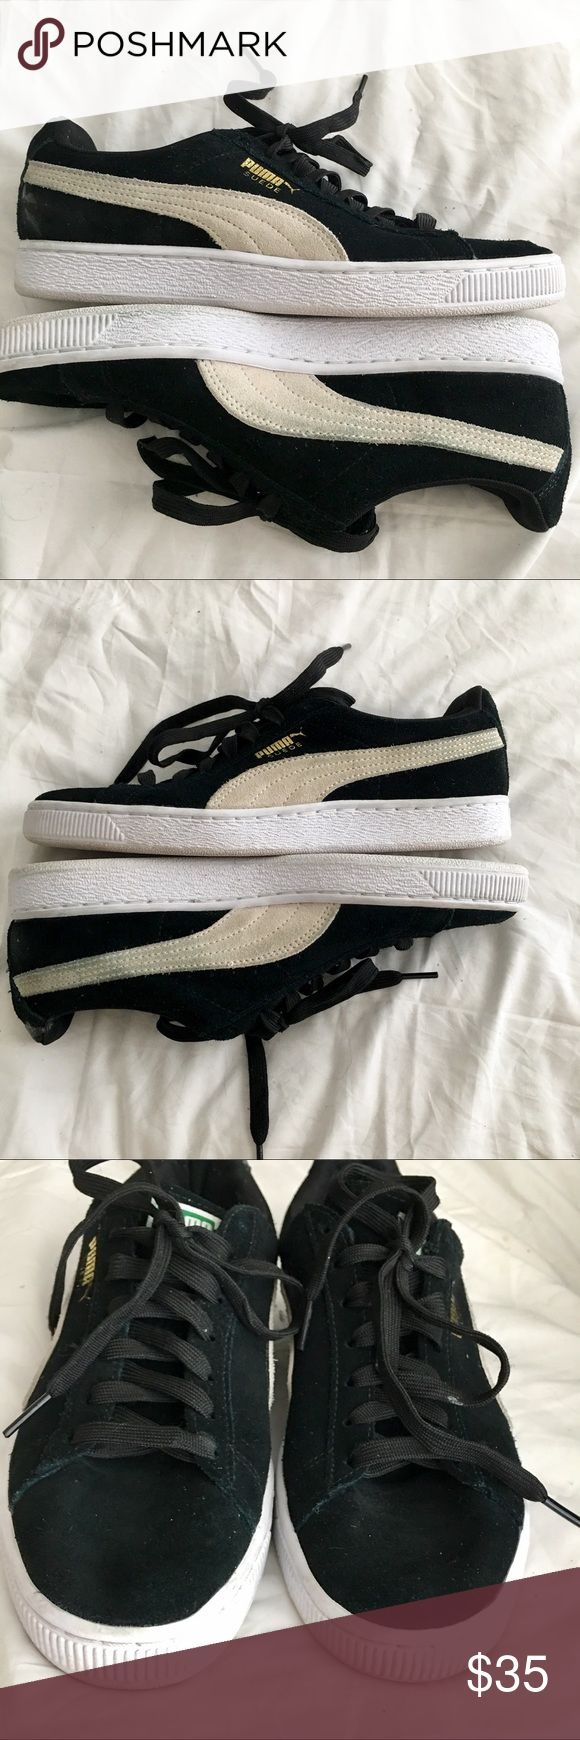 Puma Suede Classic Black Sneakers Women's Size 9 Very good condition overall.  Flaws: gray puma stripes slightly discolored from black suede & right back heel has some candle wax (no idea how that happened 😬), see photos. Puma Shoes Athletic Shoes